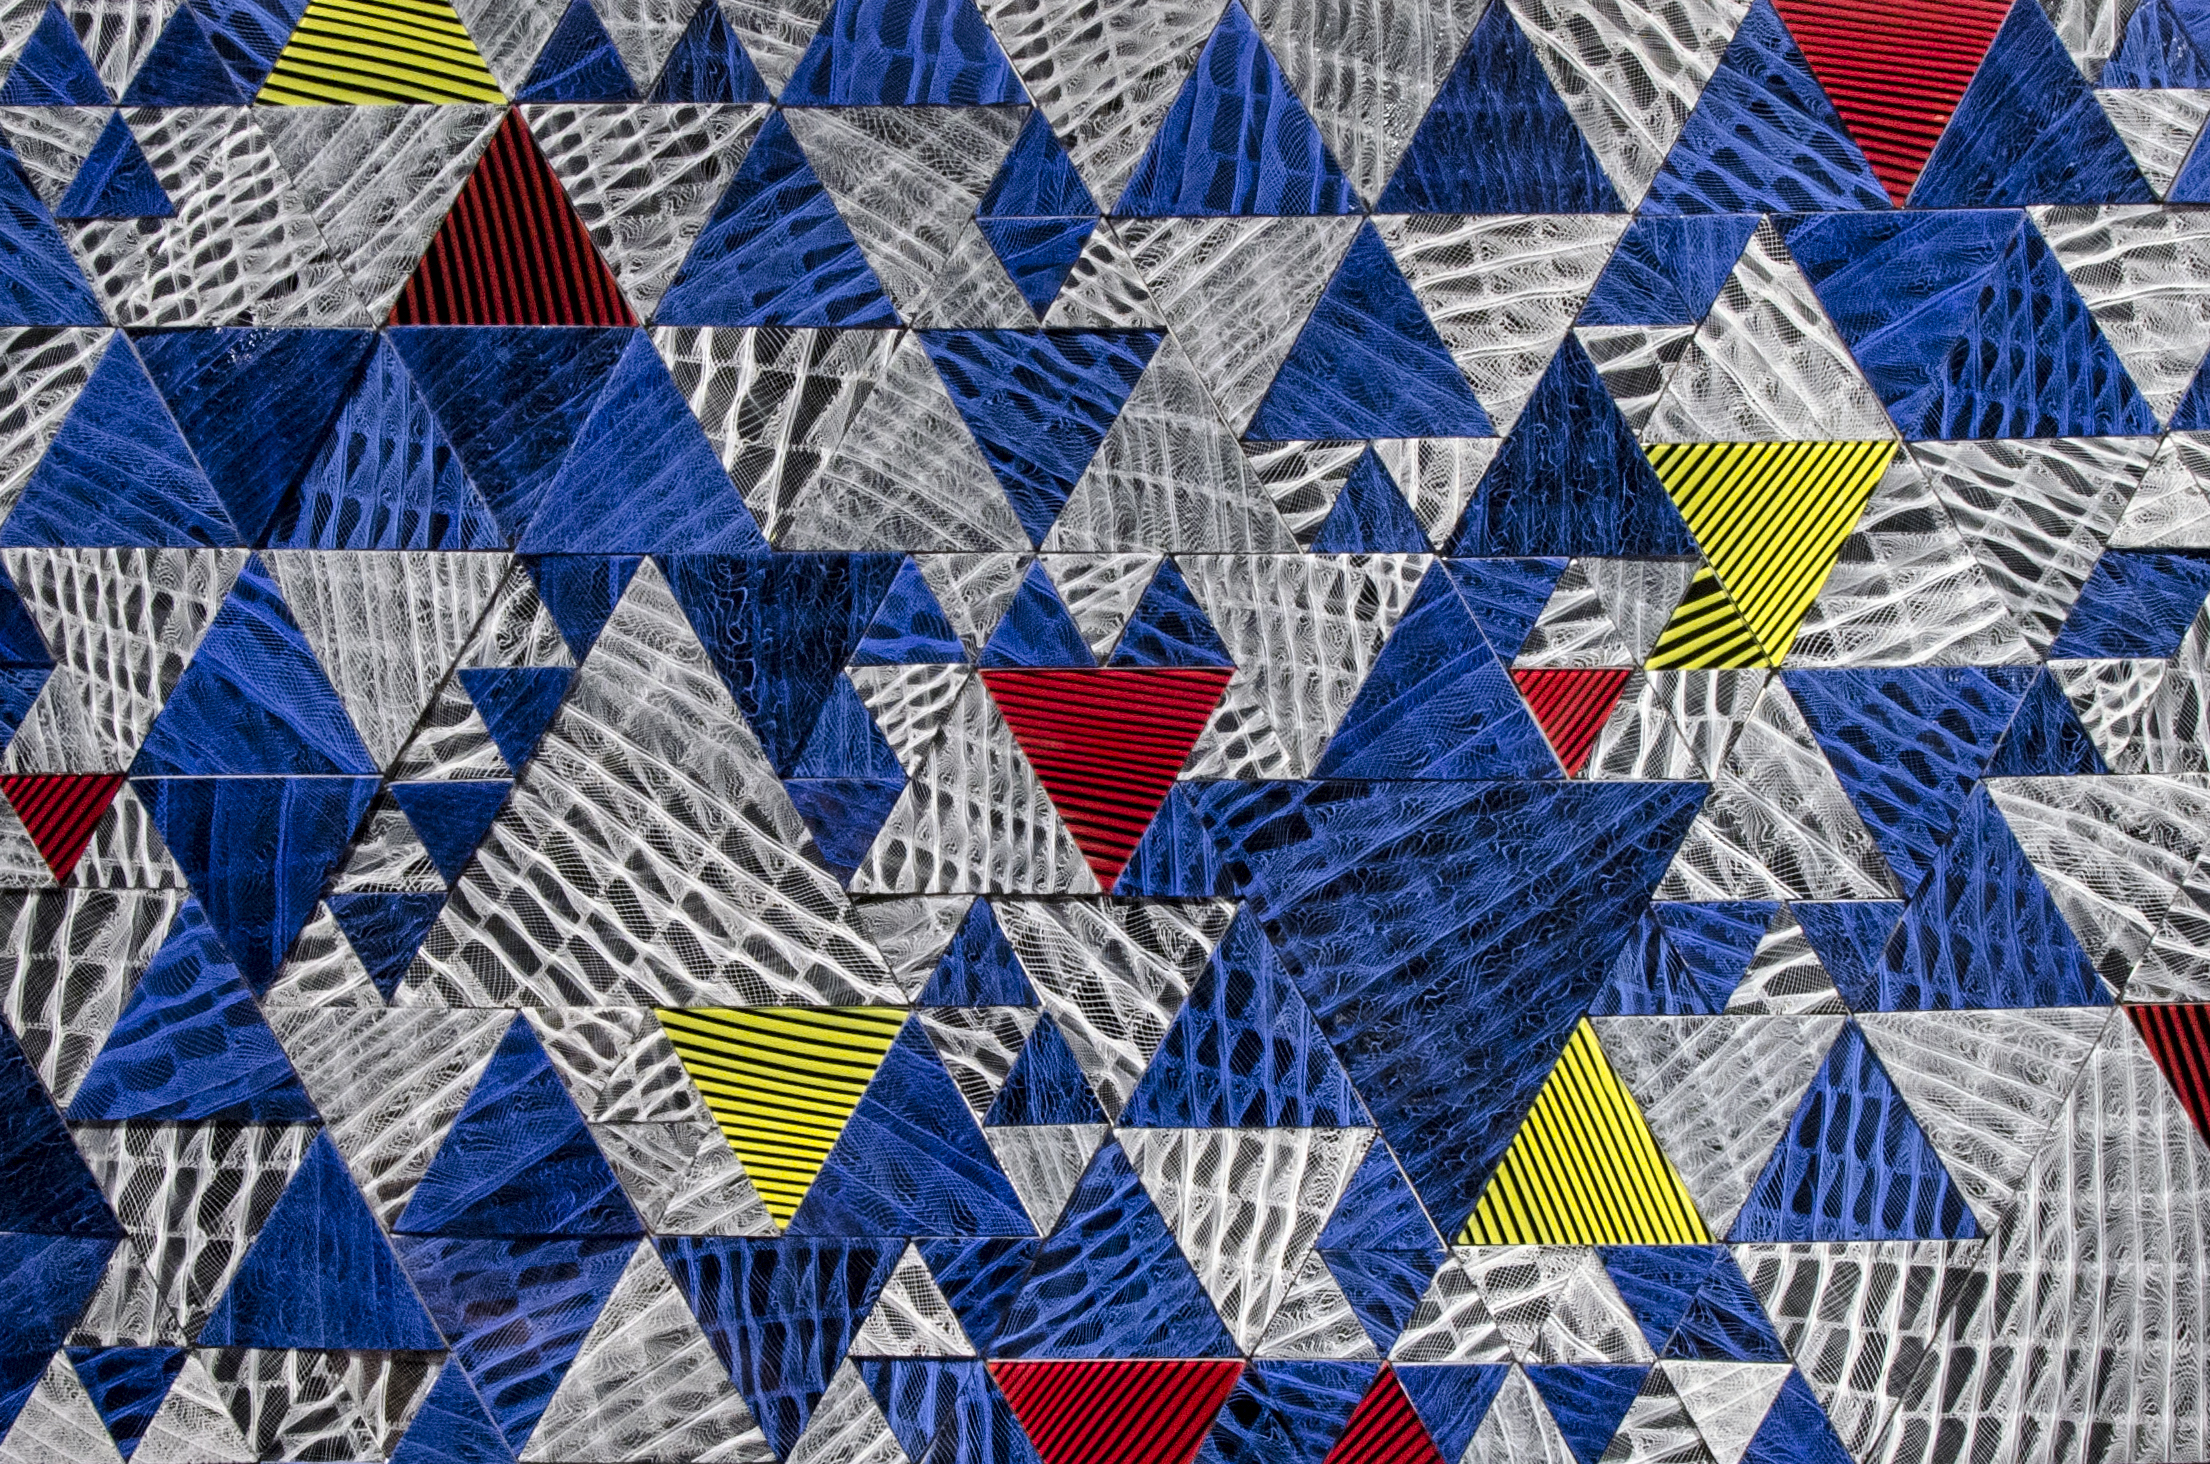 Vitreous Tessellation (detail) - 2014